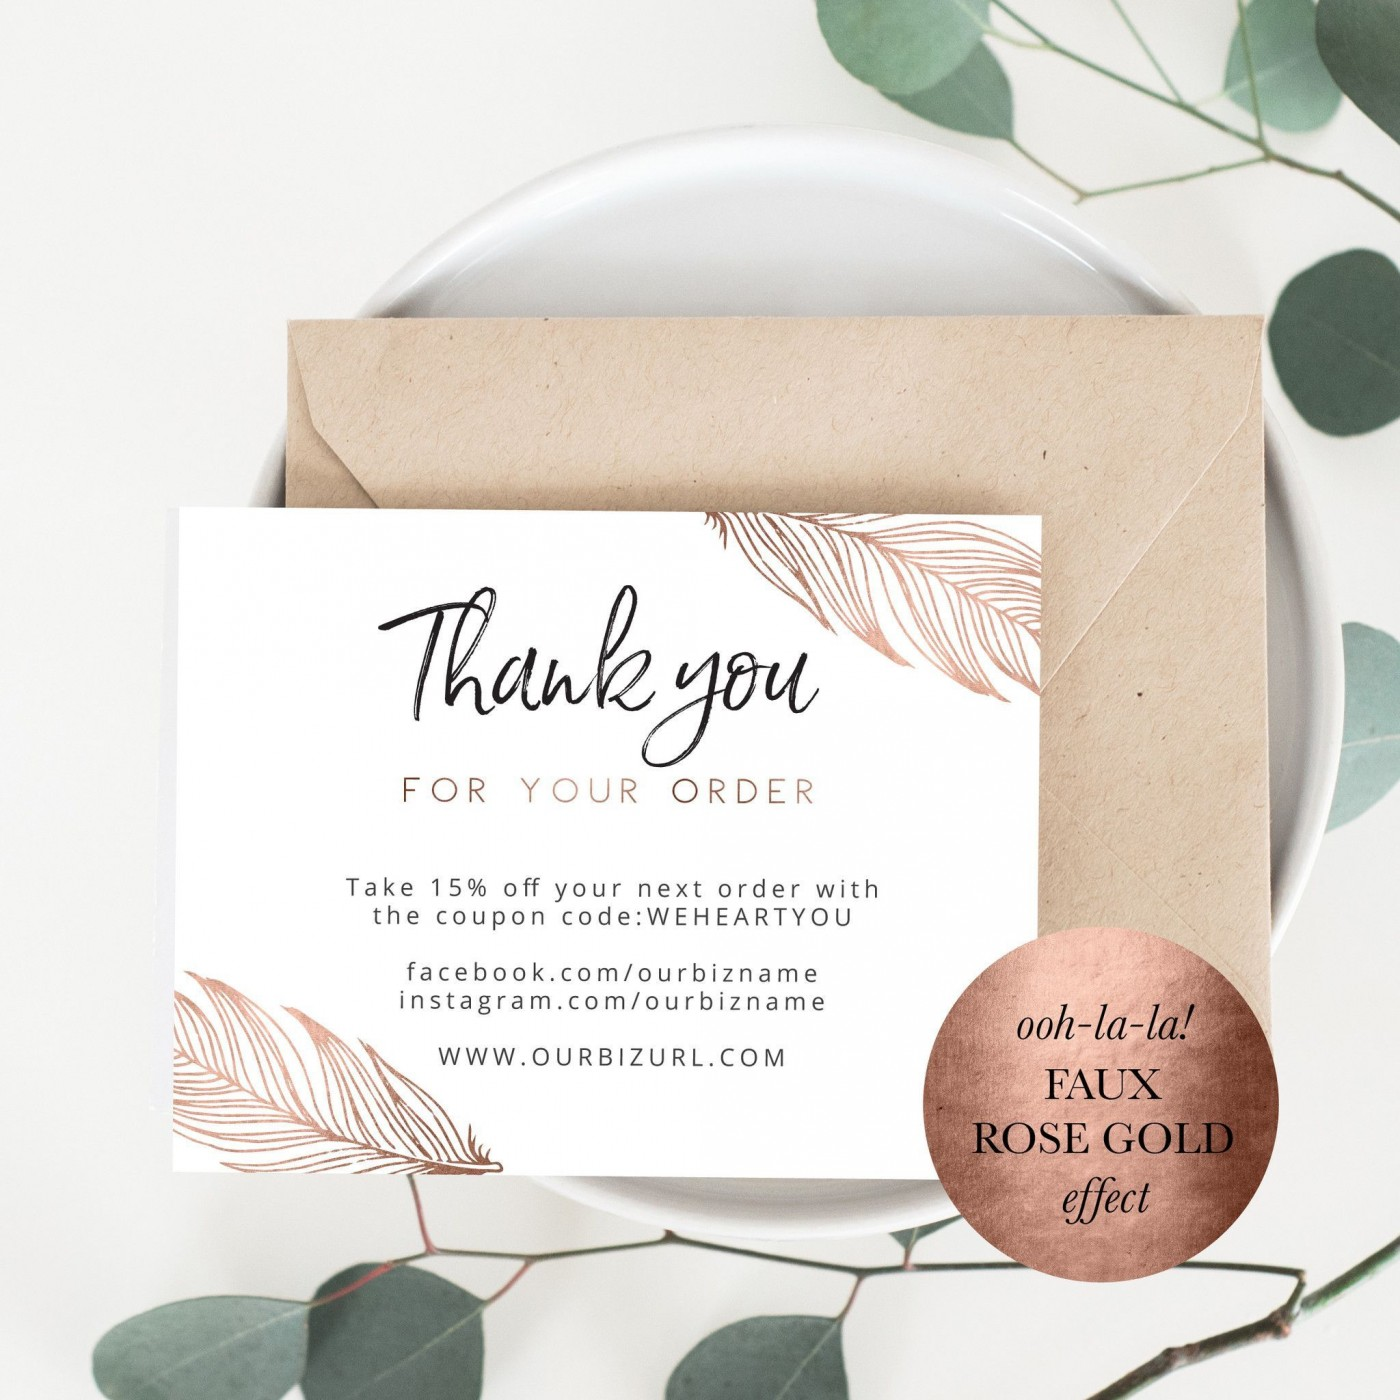 001 Dreaded Thank You Card Template High Resolution  Wedding Busines Word Free1400